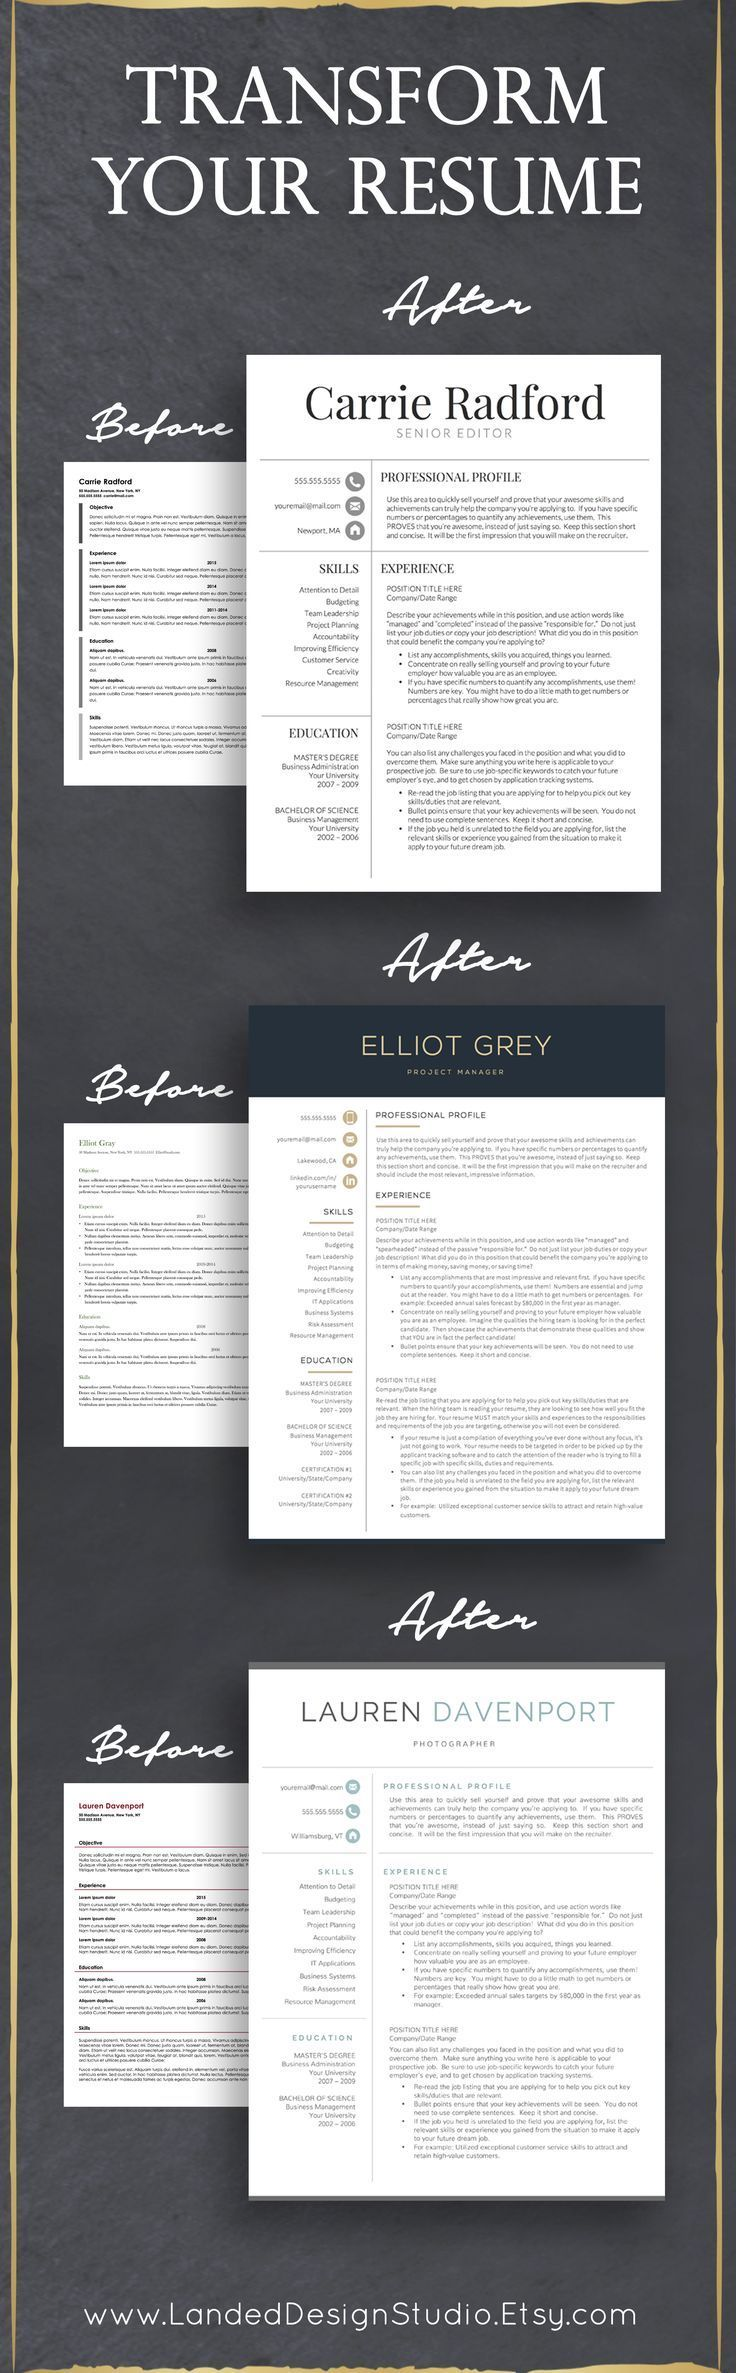 cosmetologist resume%0A Completely transform your resume with a professional resume template  resume  writing tips and resume advice